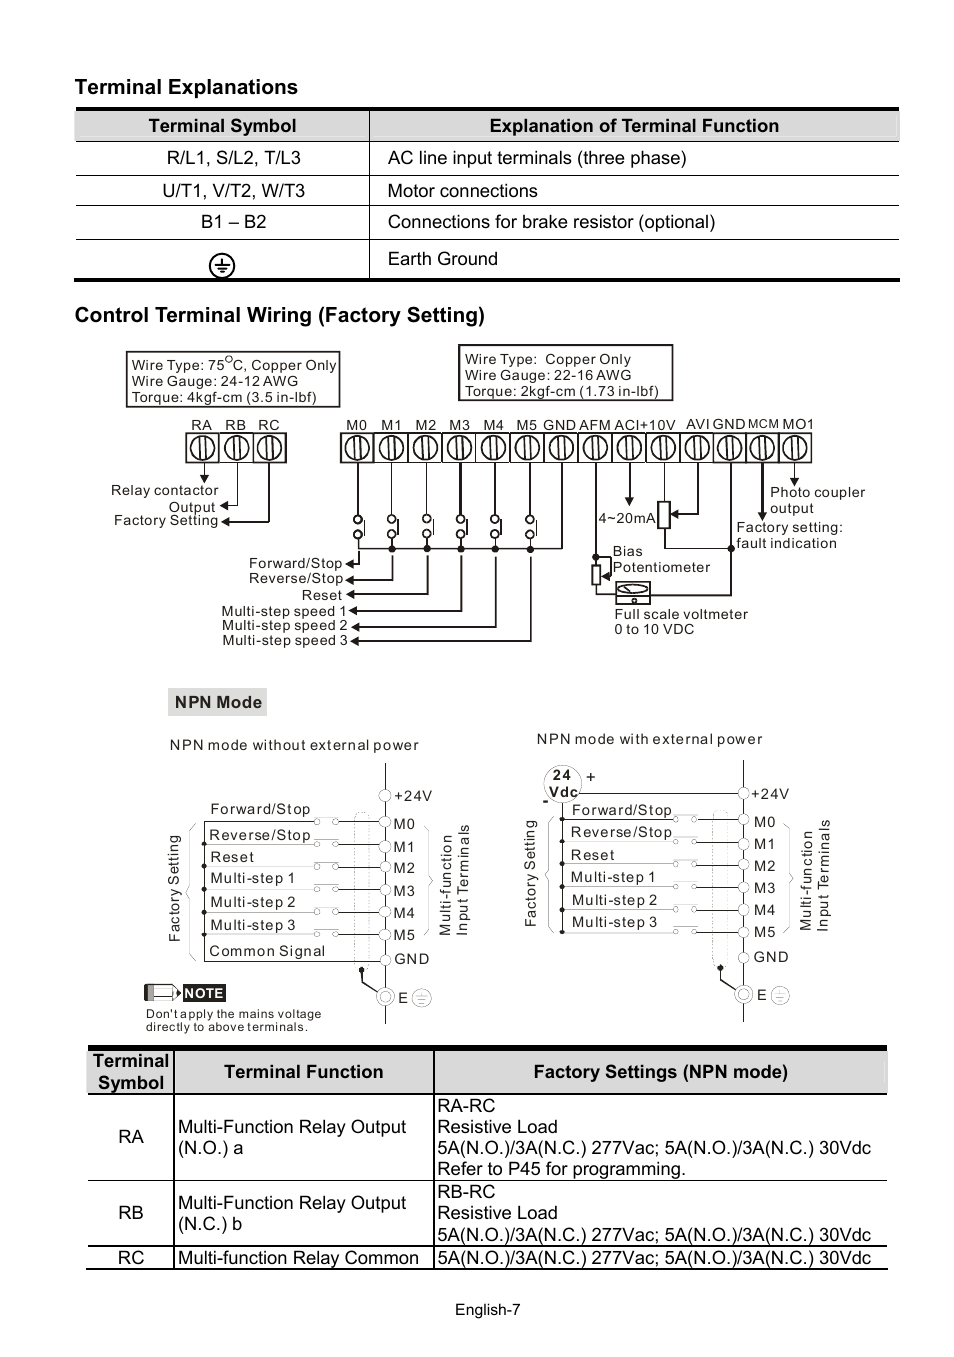 hight resolution of terminal explanations control terminal wiring factory setting delta electronics ac motor drive vfd xxxm user manual page 7 22